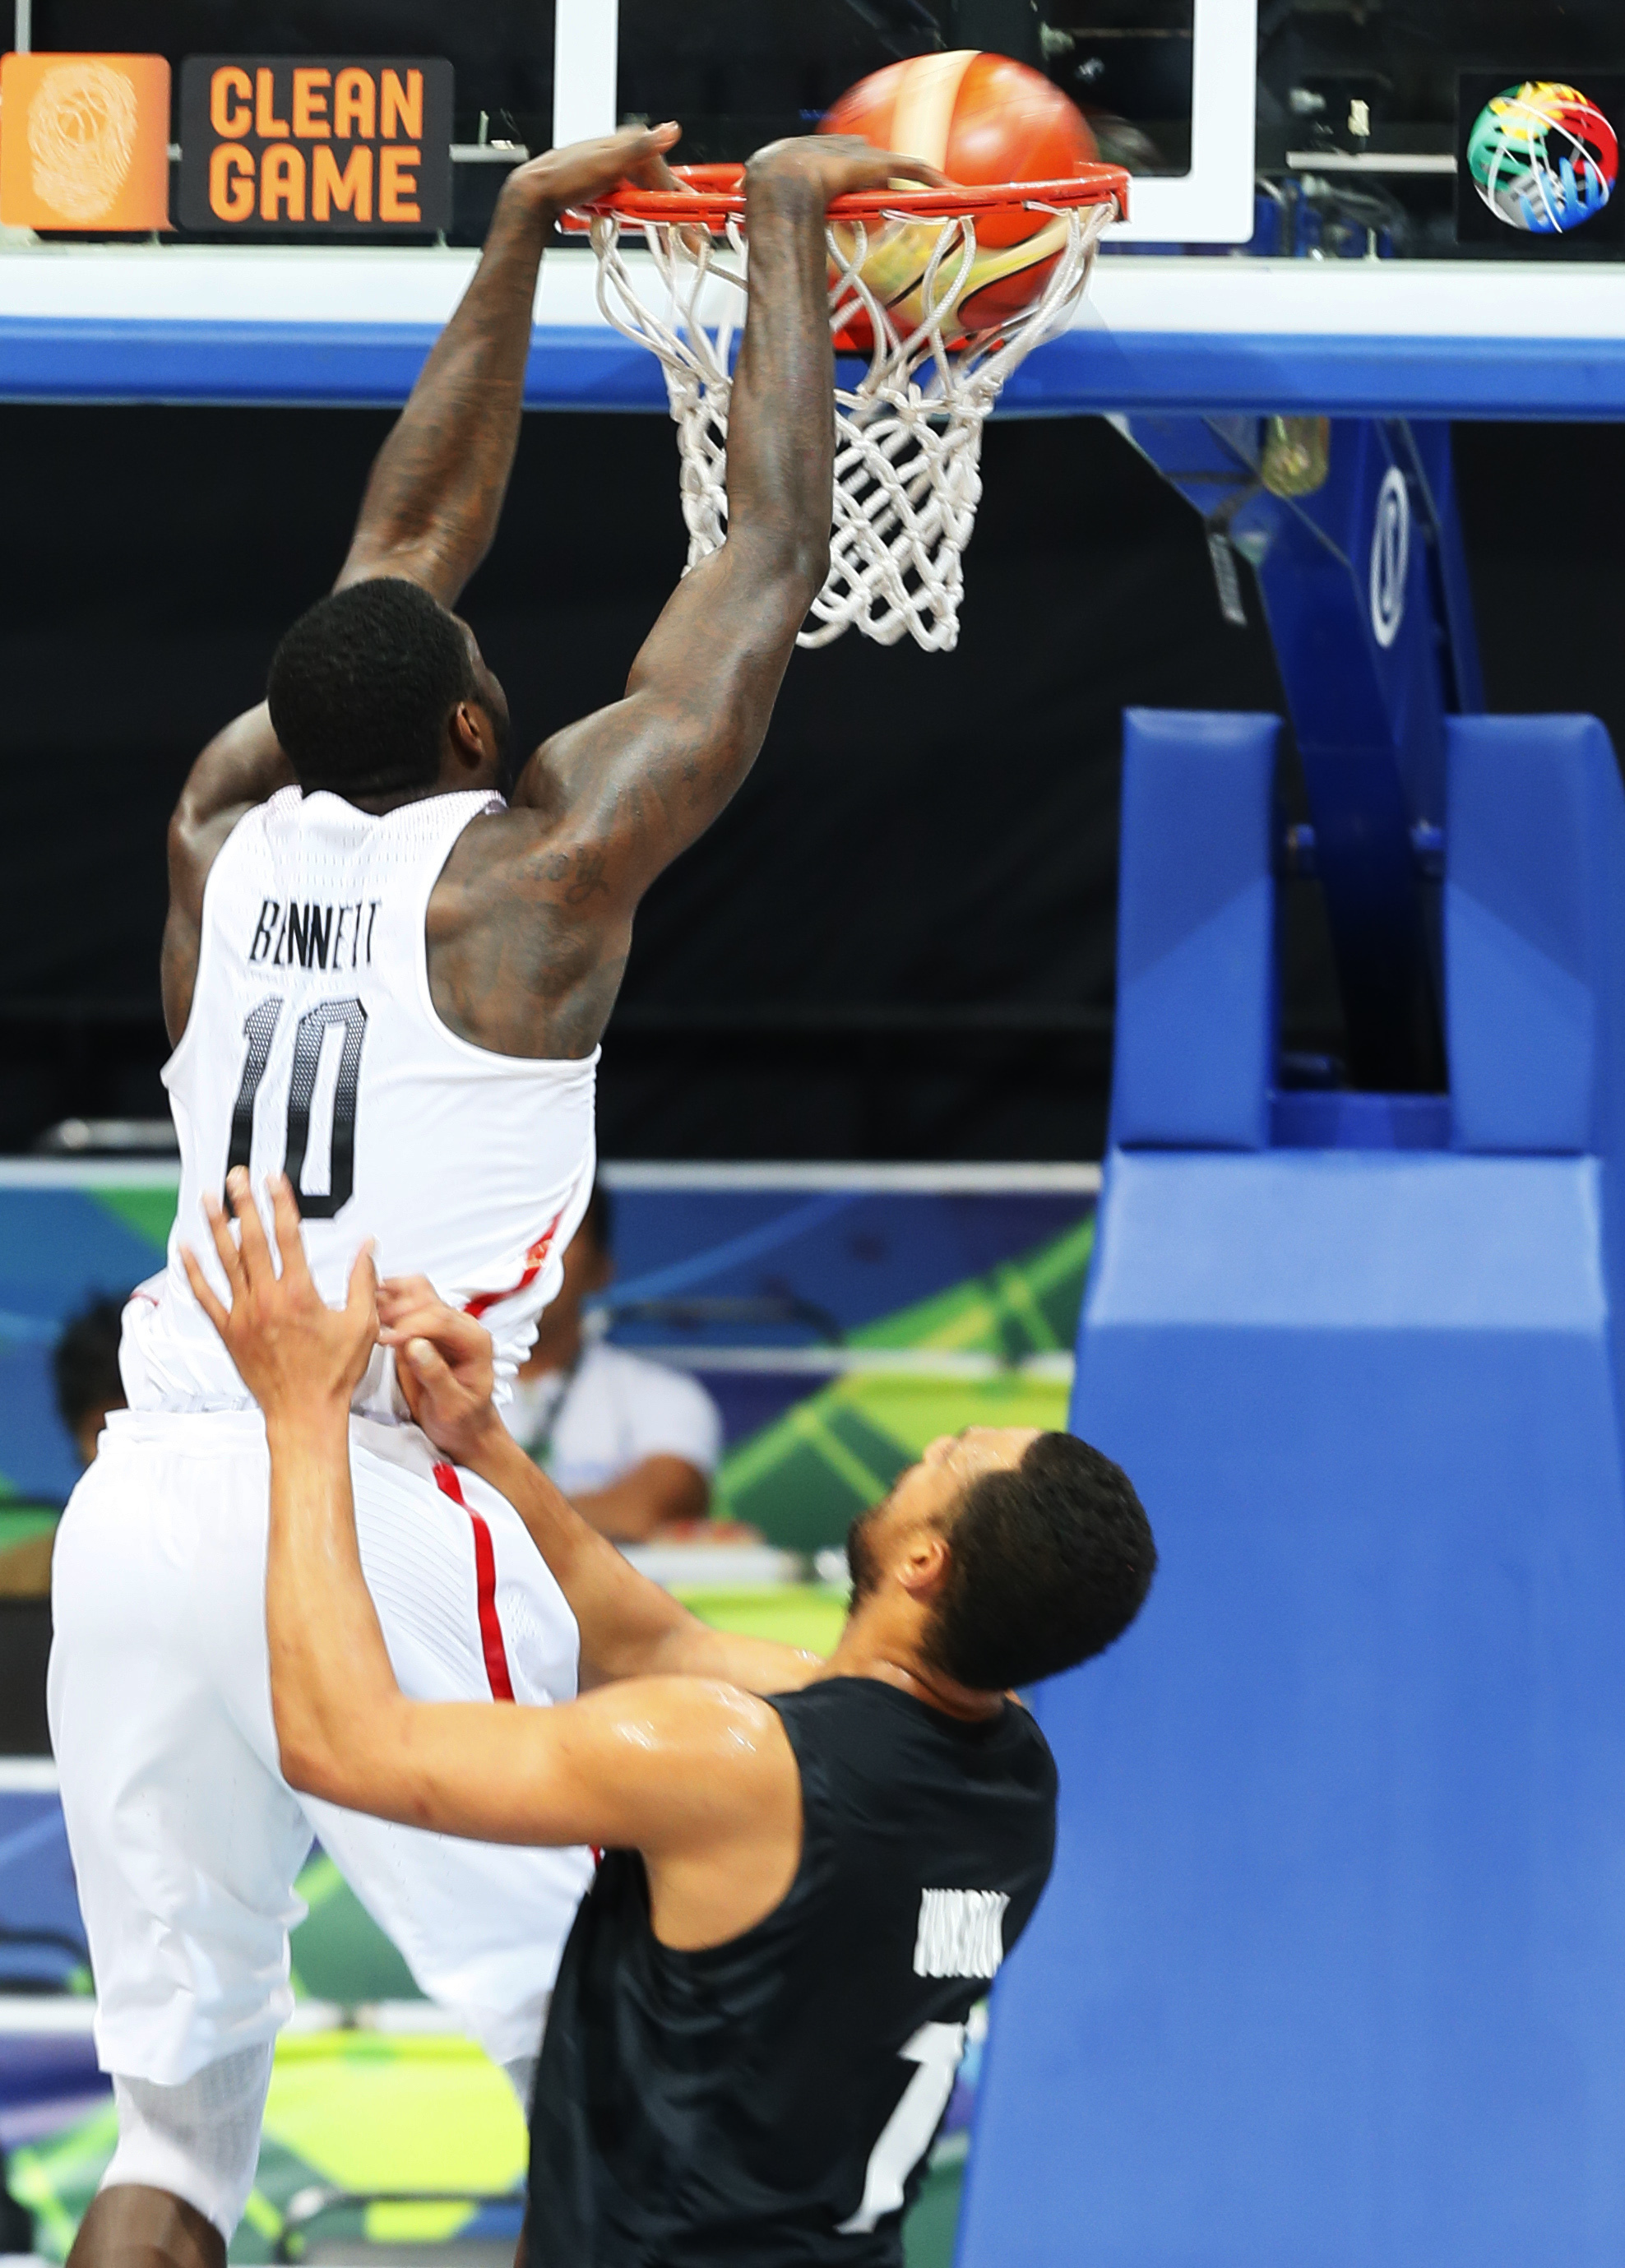 Canada's Anthony Bennet (10) slams to score during their semi-final match against New Zealand in the FIBA Olympic Qualifying basketball semi-final match Saturday, July 9, 2016 in suburban Pasay city south of Manila, Philippines. At right is New Zeraland's